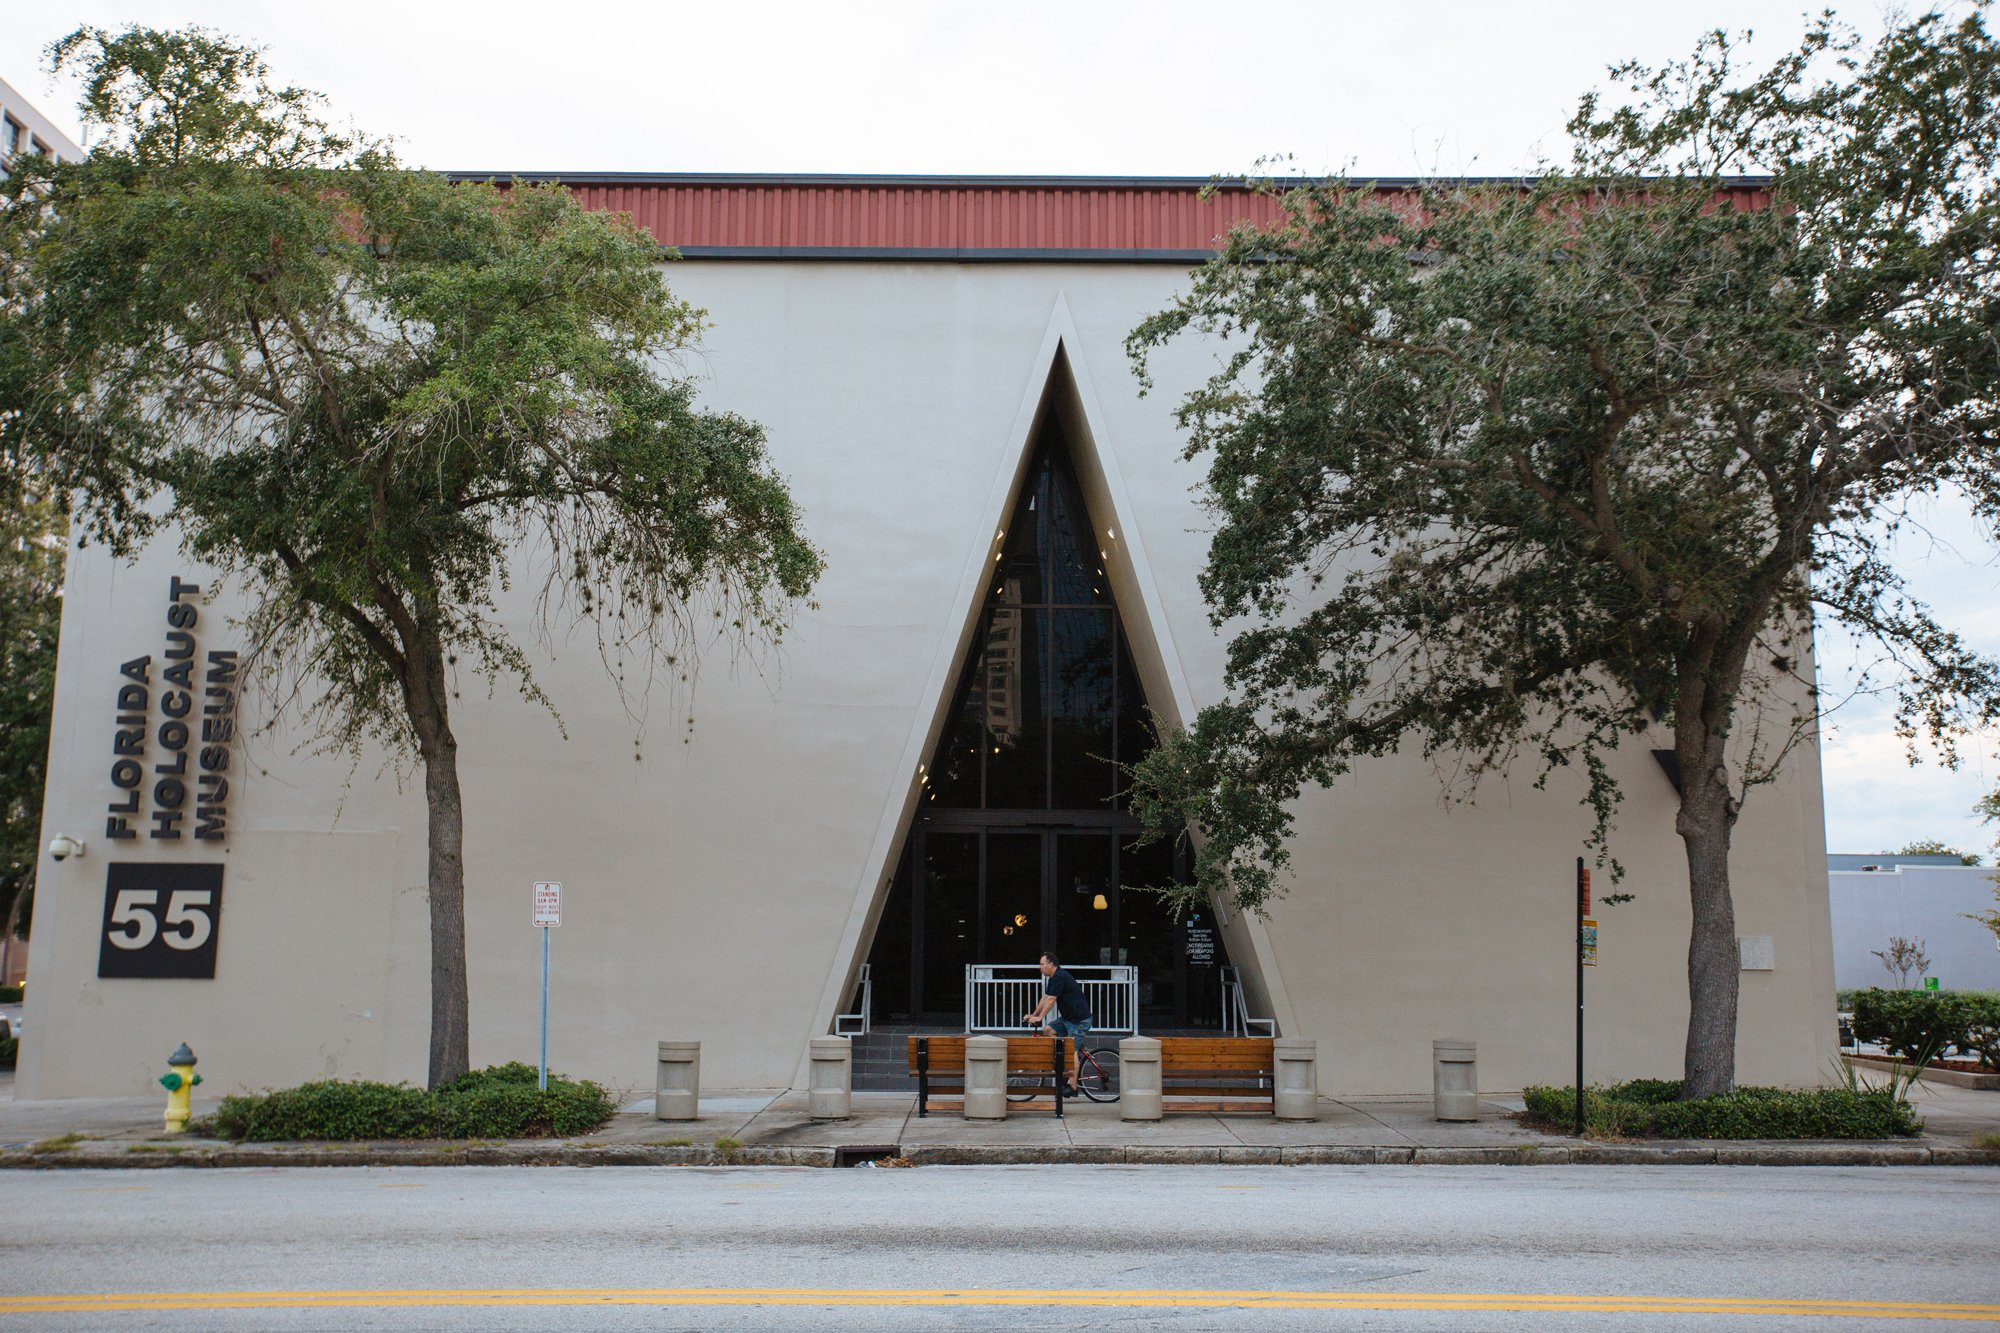 The Florida Holocaust Museum. Photo by City of St. Petersburg.